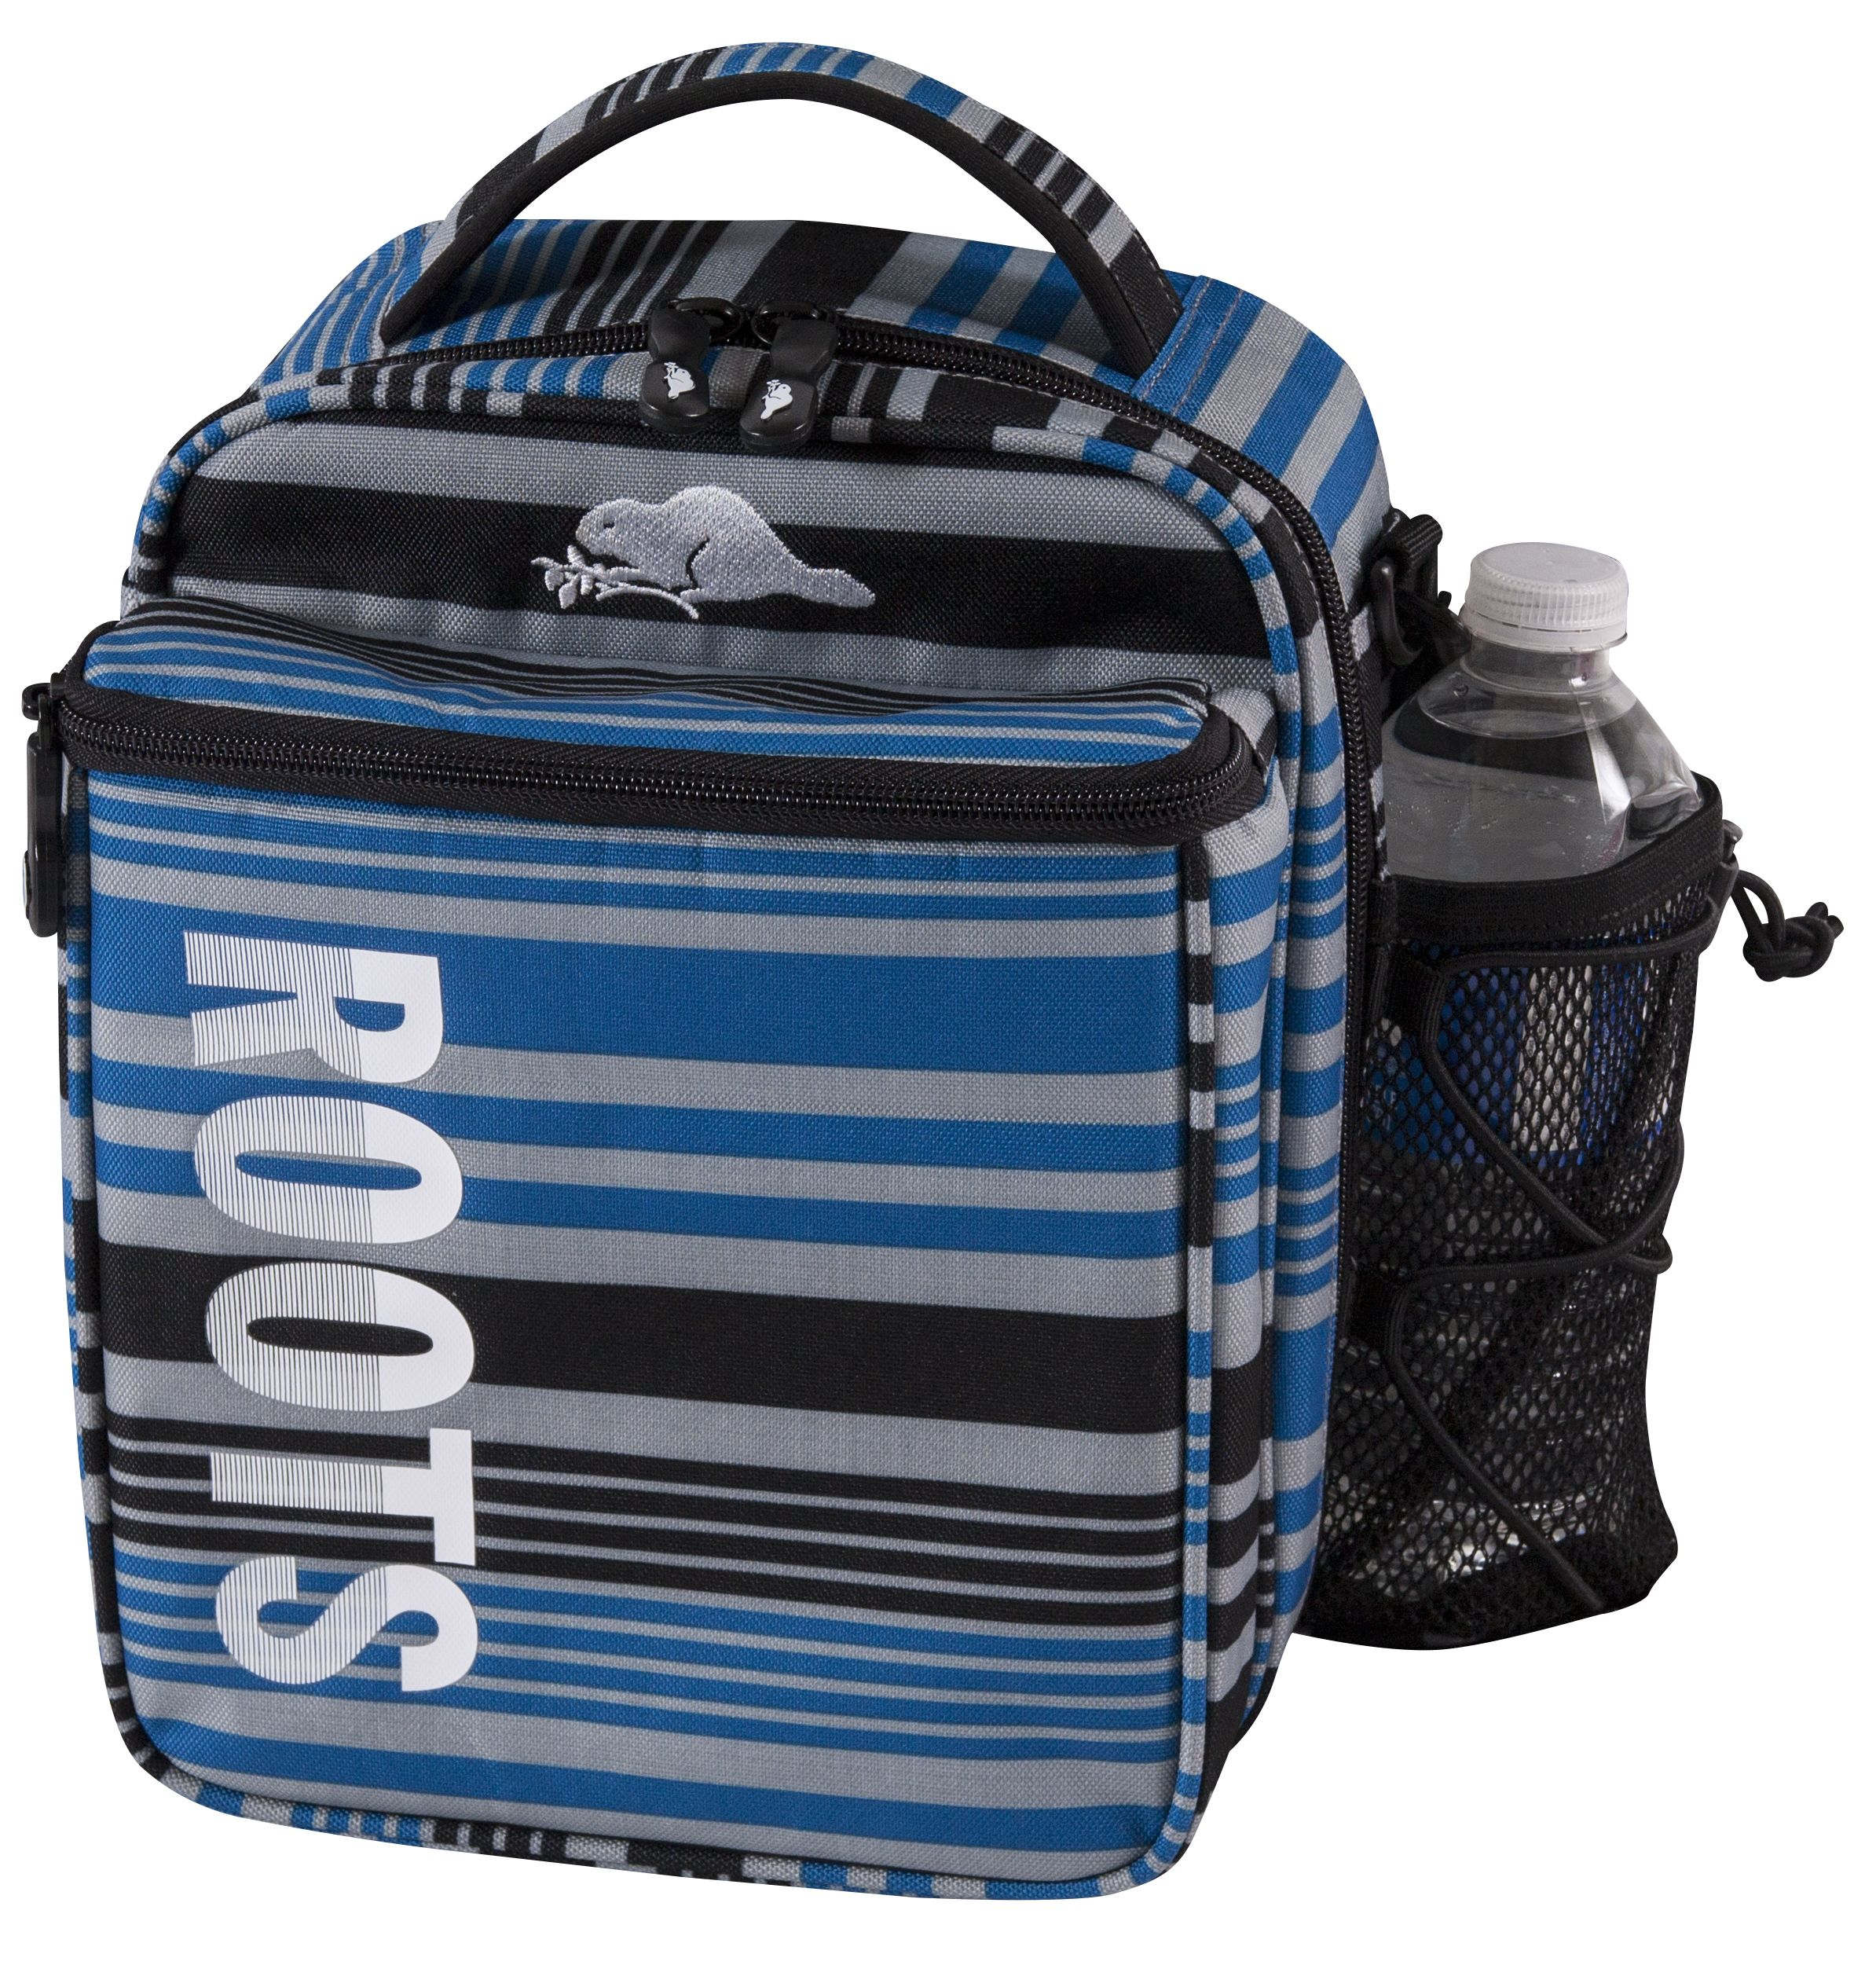 fe0c09159940 Roots Cooler Bag with Plastic Containers and Ice Pack | Lunch Boxes ...